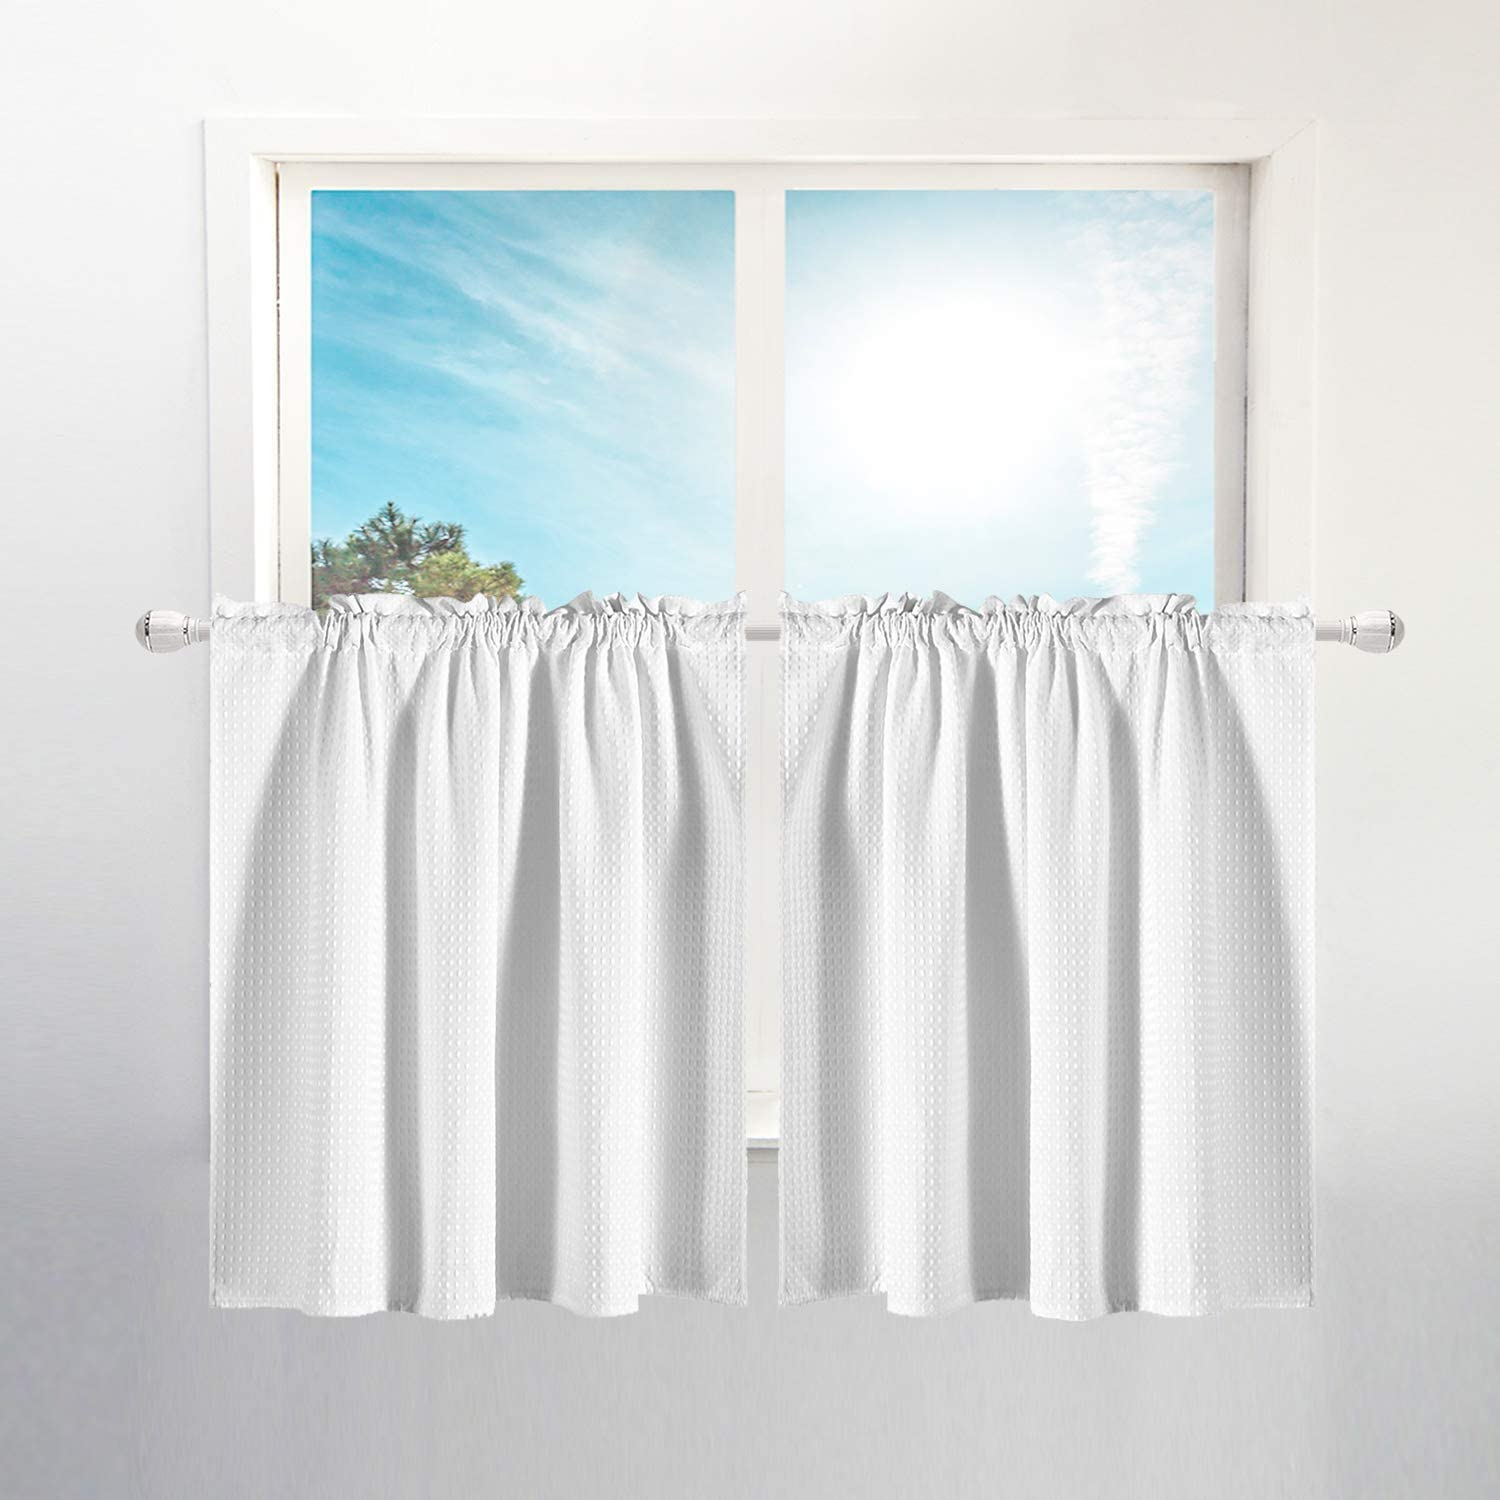 waffle weave half window tier curtains 30 inch length for small window in kitchen bathroom waterproof and washable white 36 x 30 for each